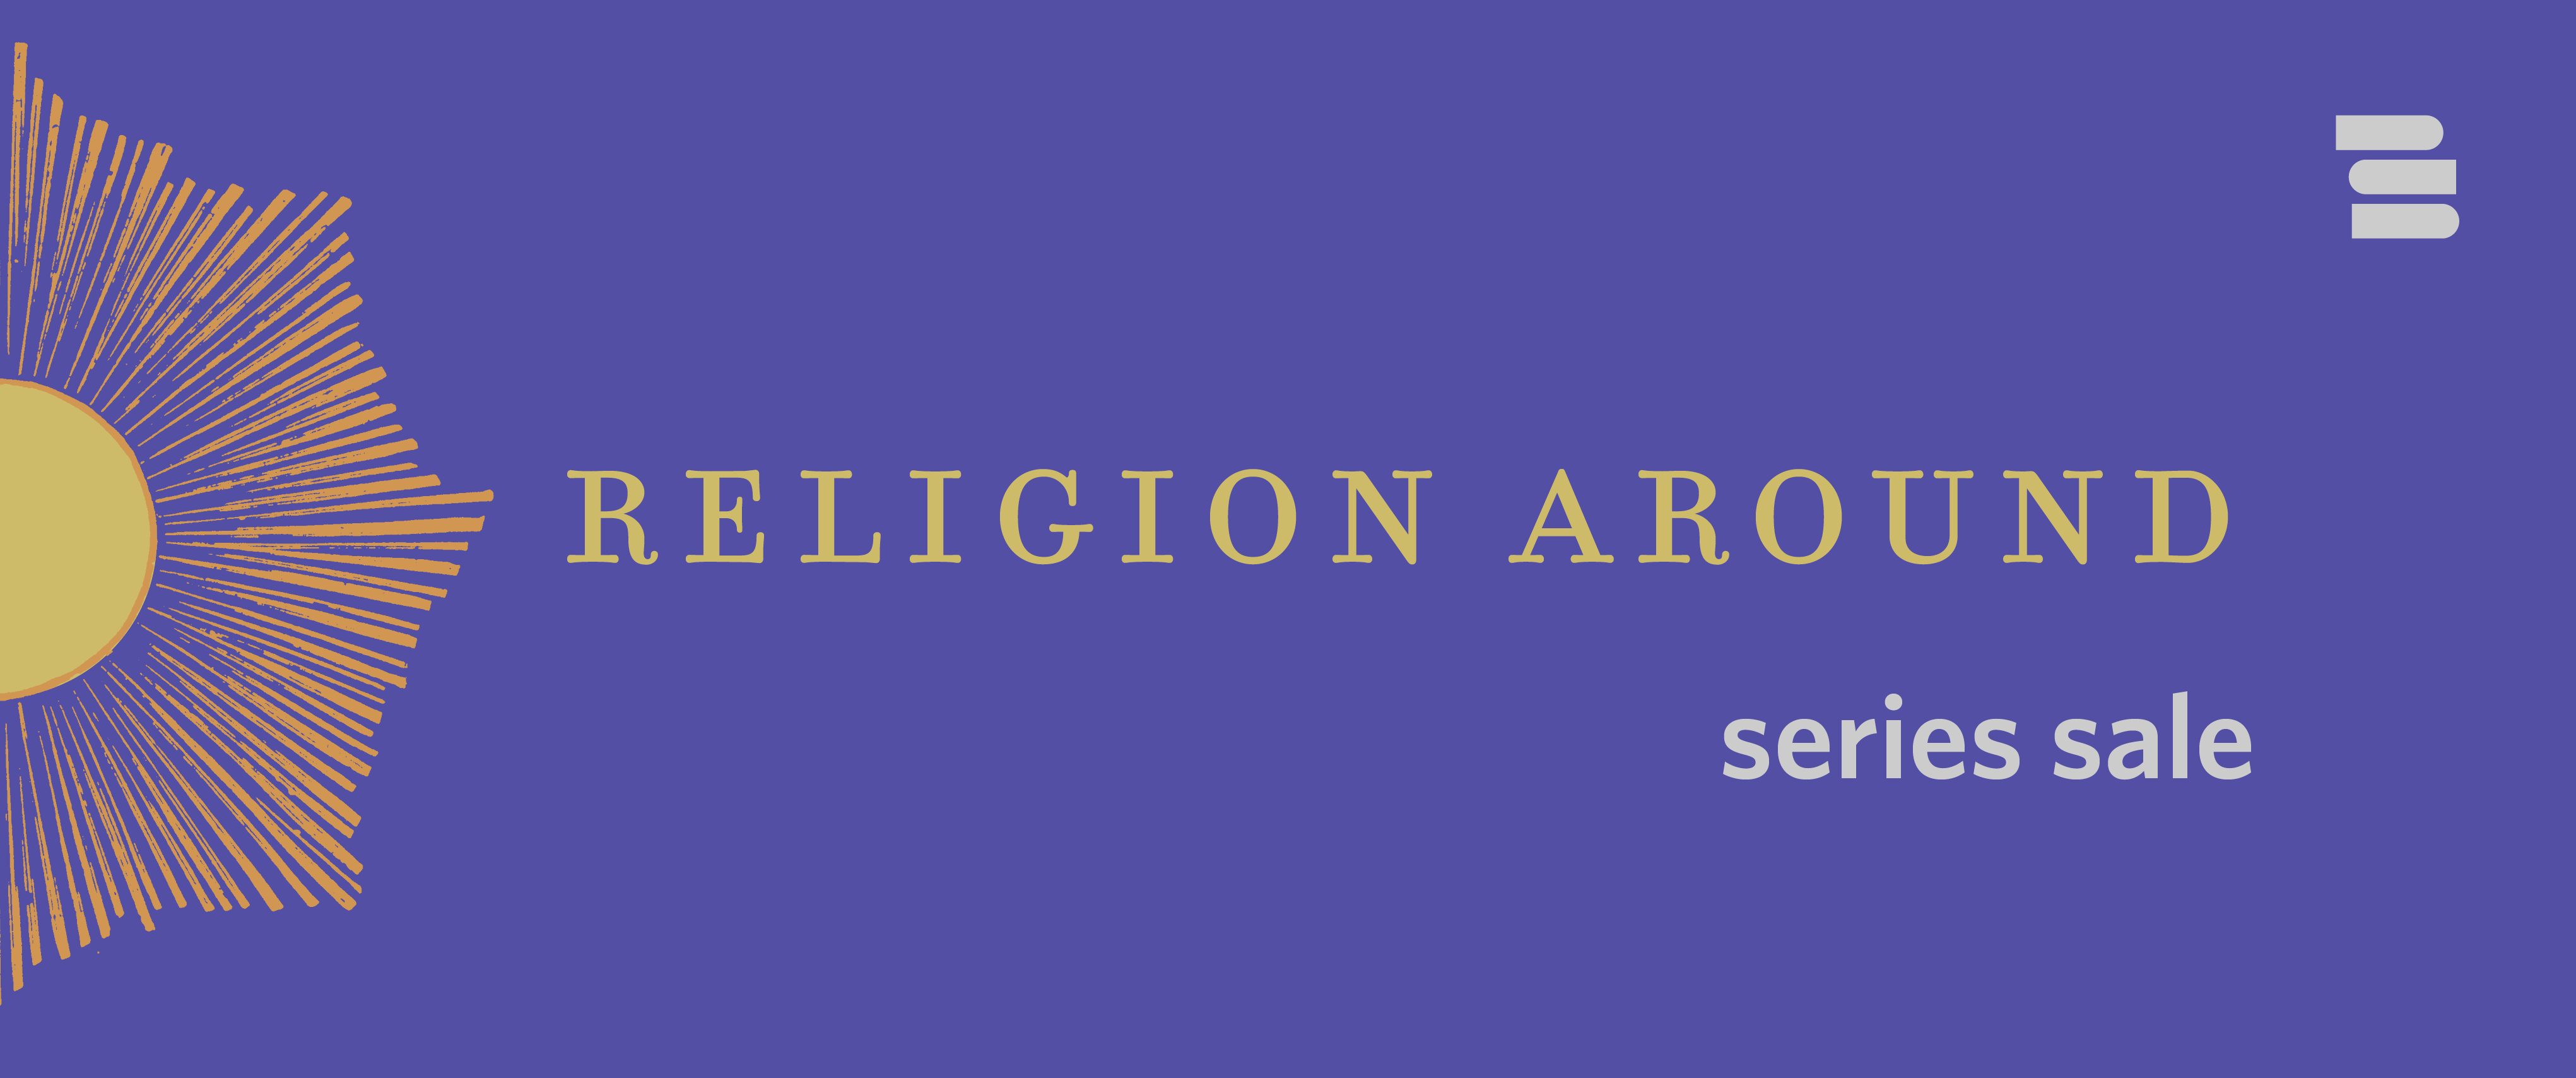 Religion Around